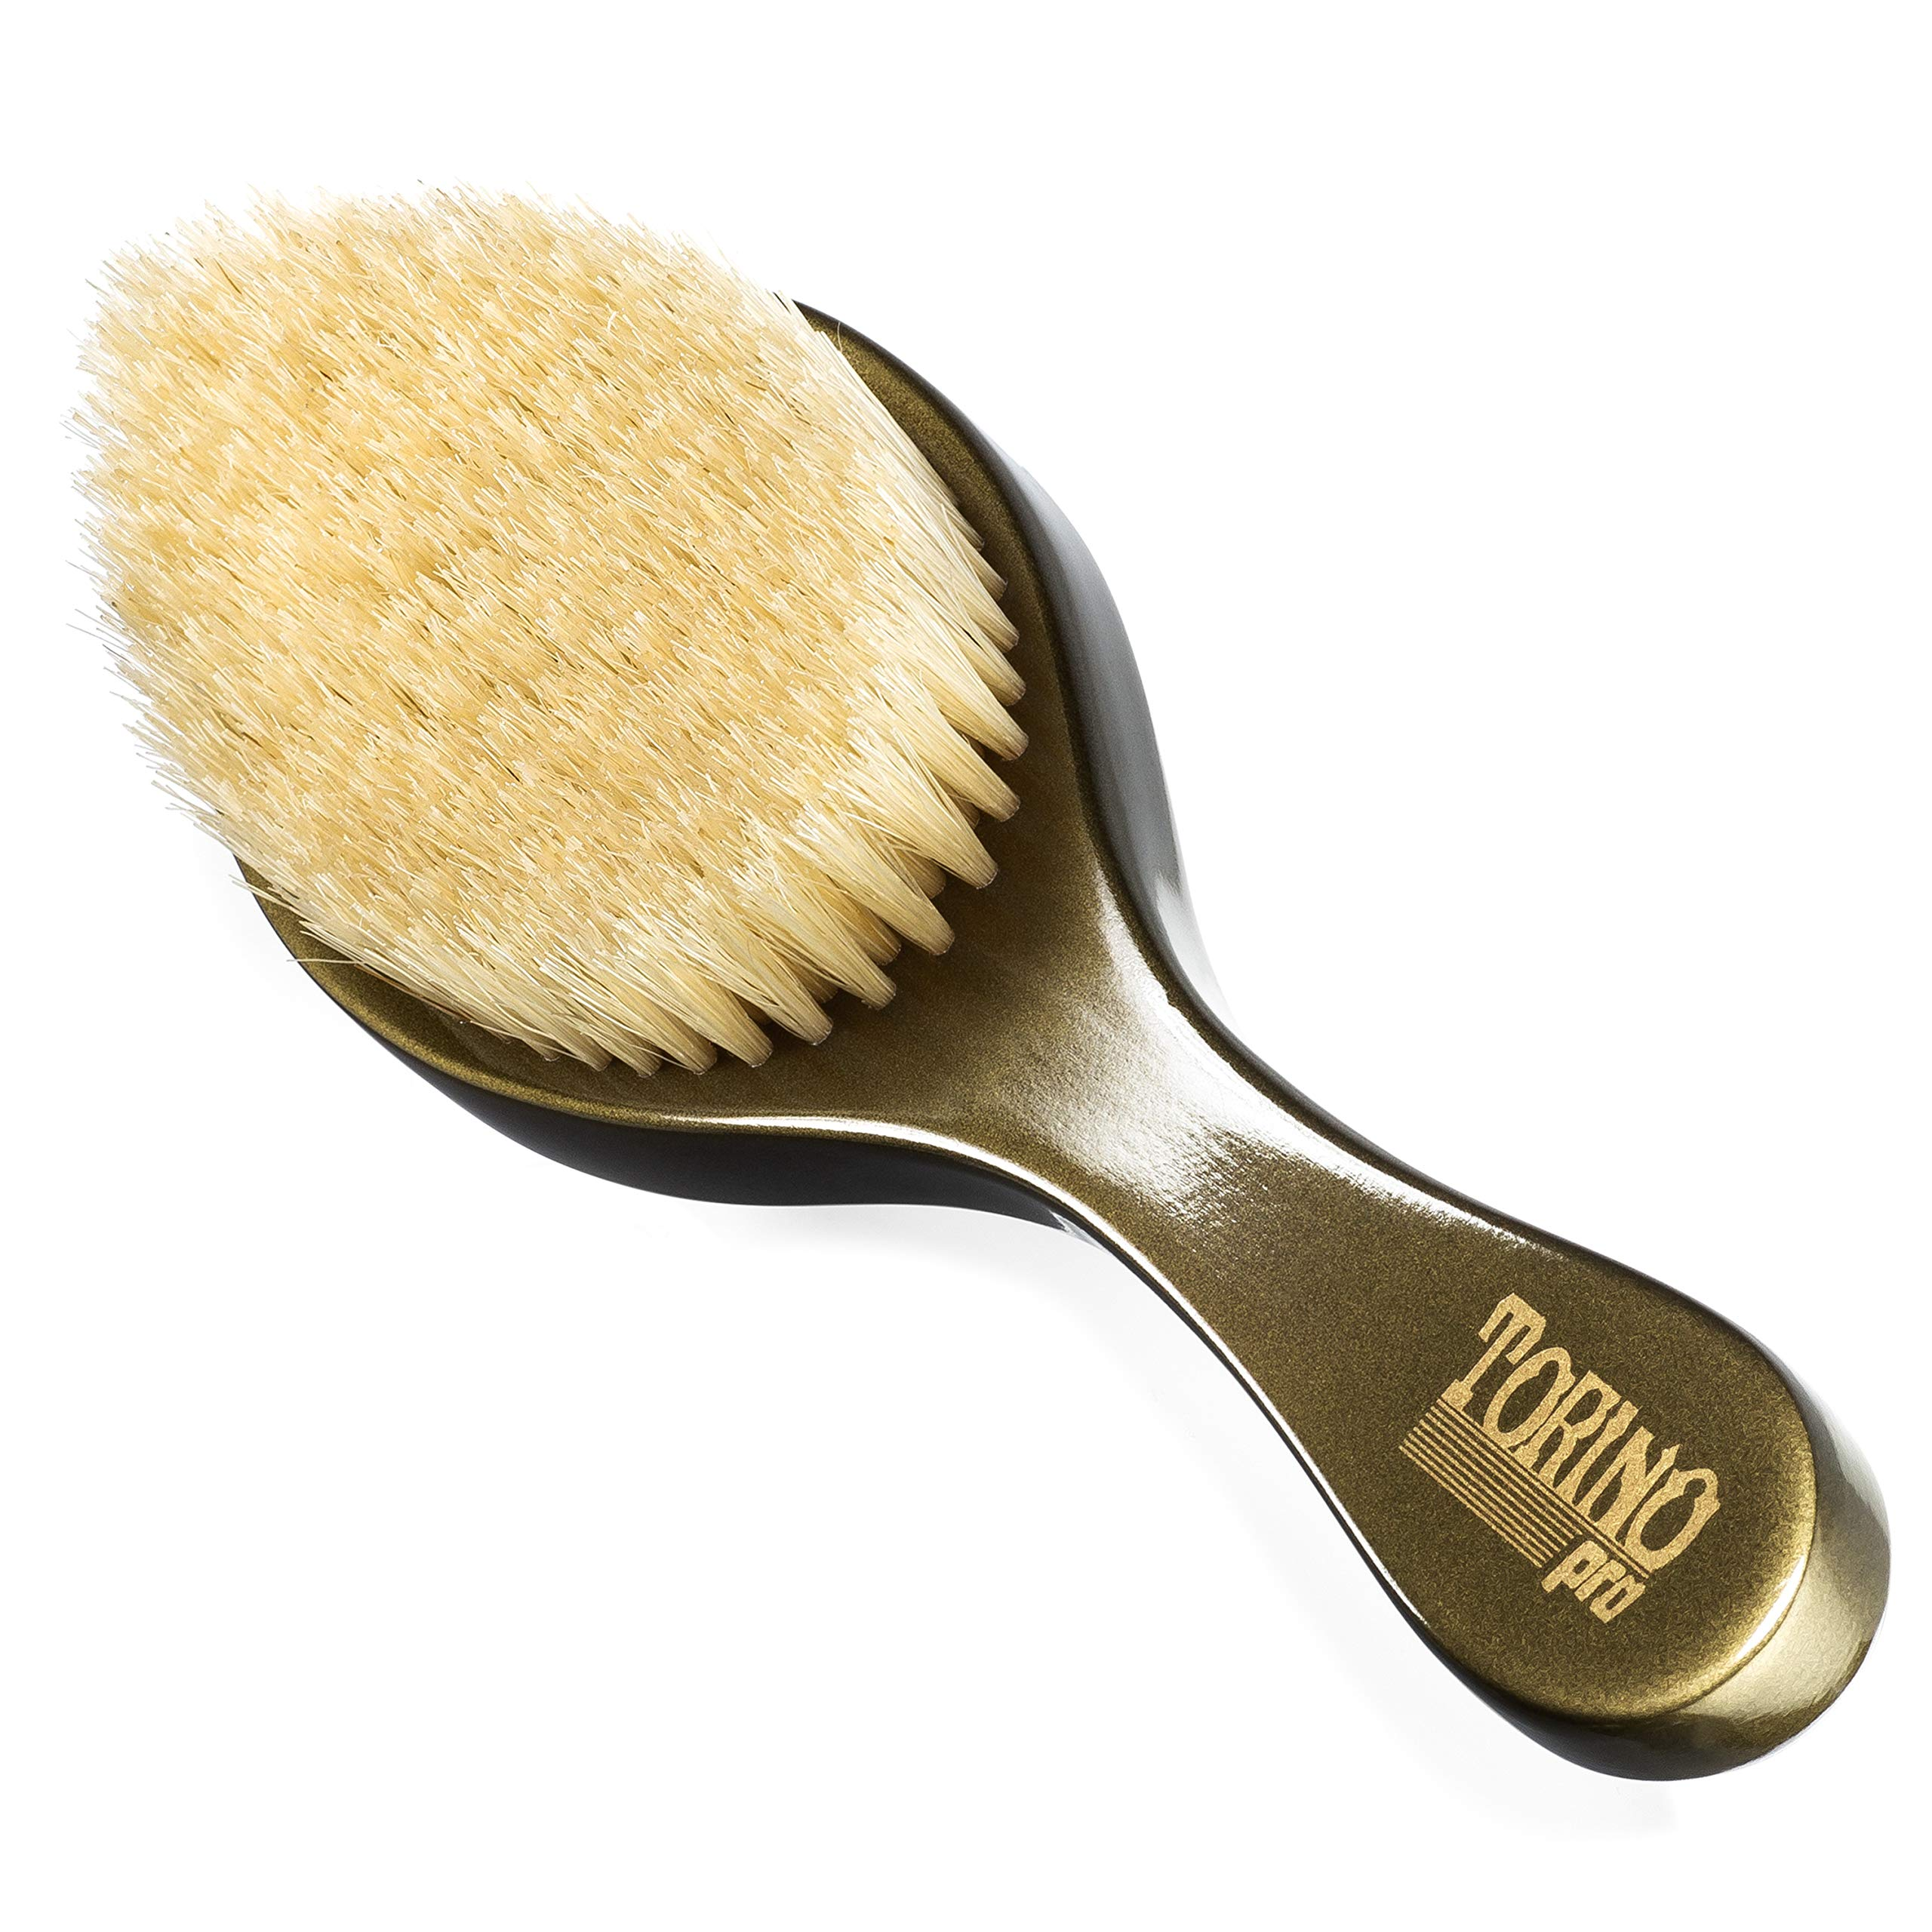 Torino Pro Wave Brush #1520 - By Brush King - Medium Curve 360 Waves Brush